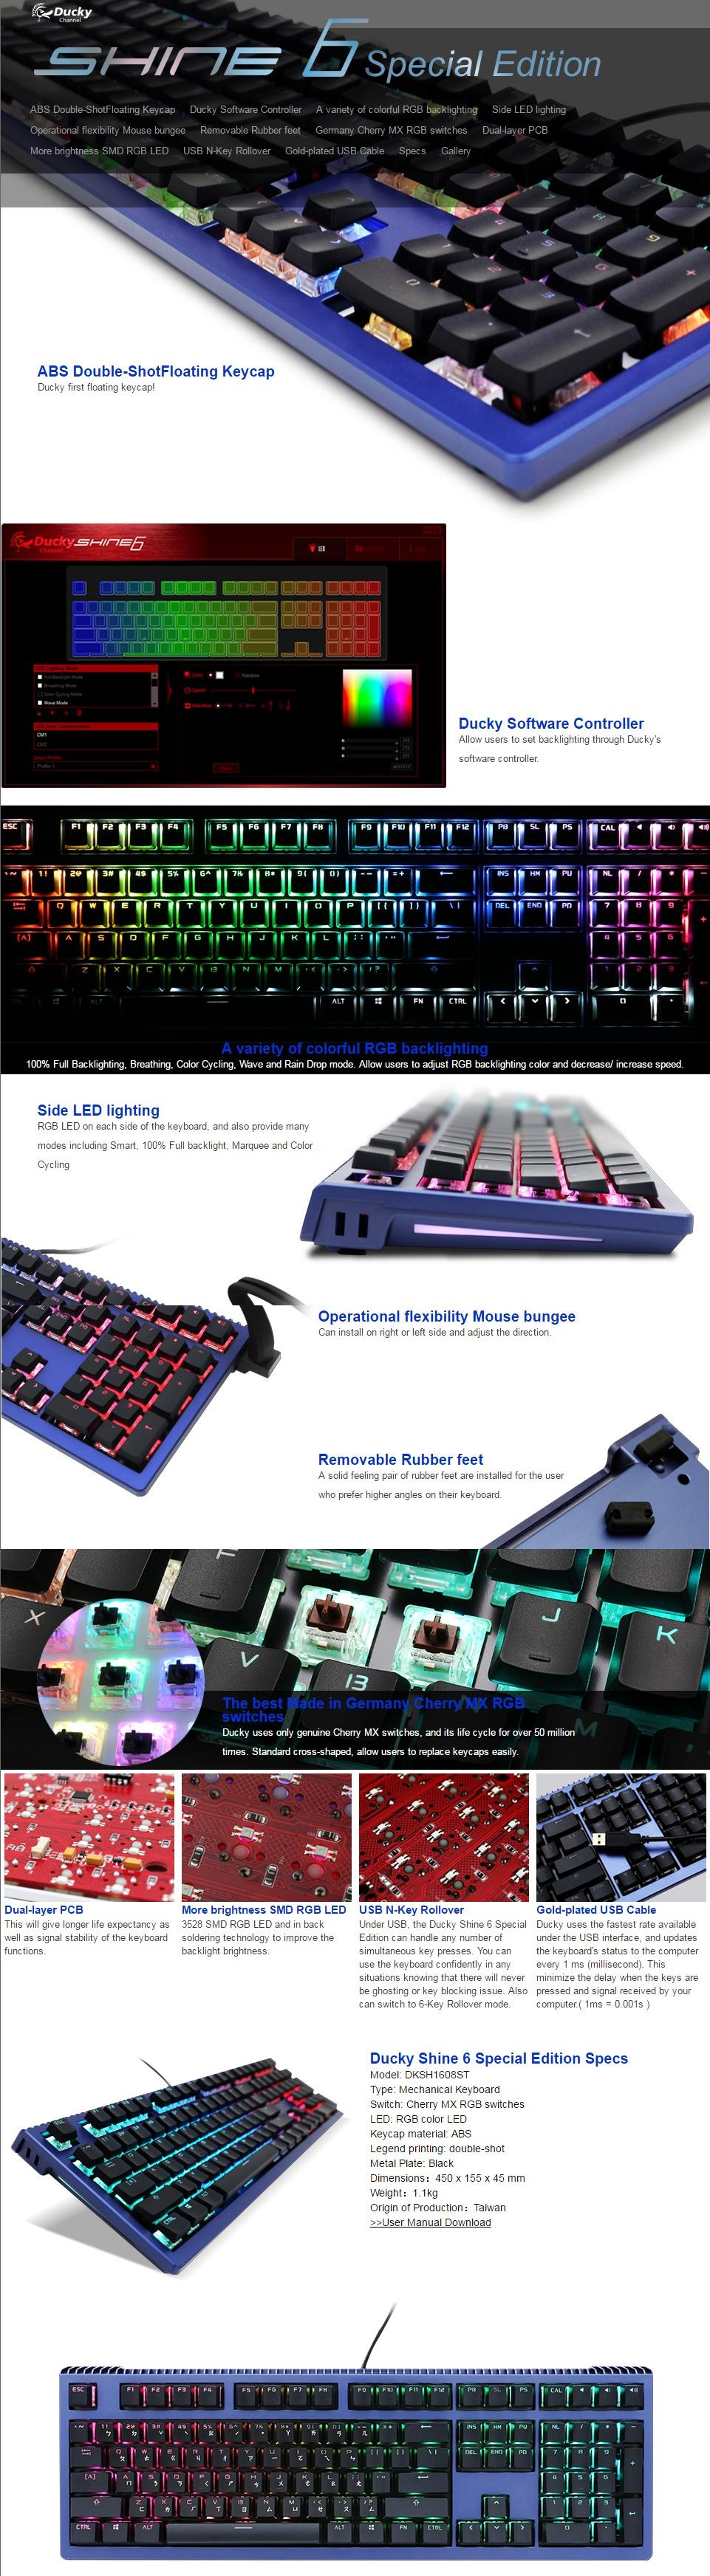 # DUCKY Shine 6 Special Edition # Cherry MX | Floating Keycaps Edition